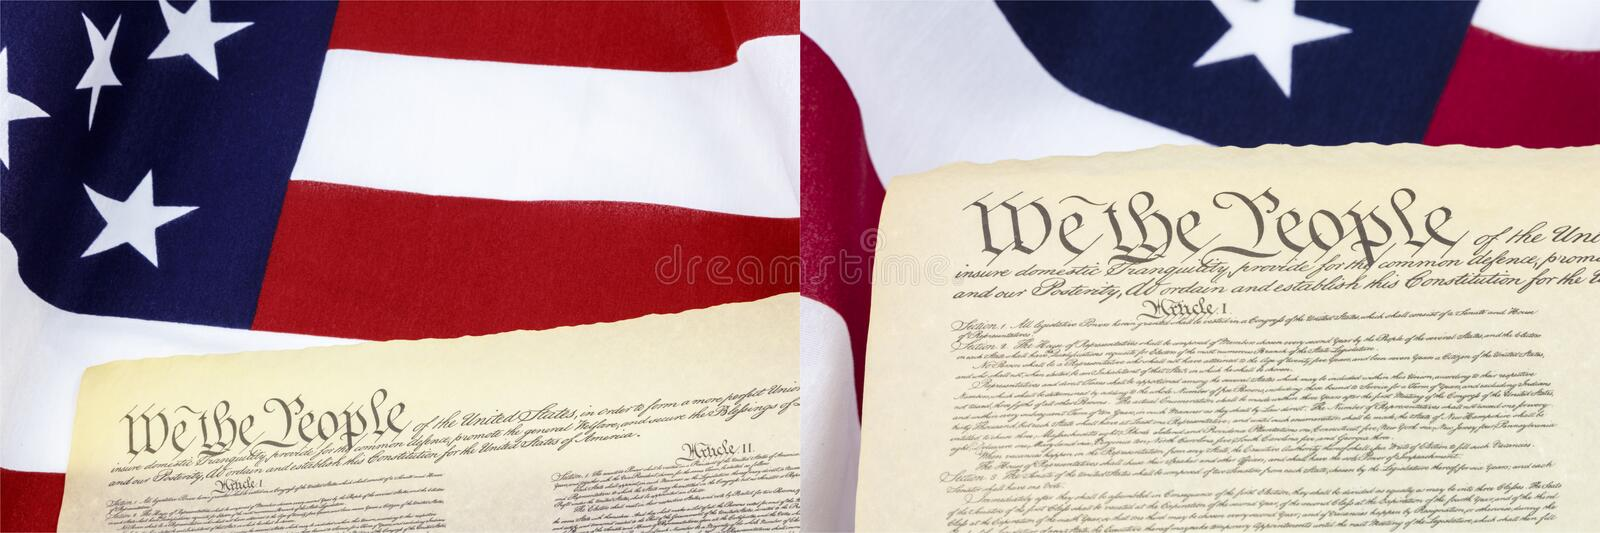 We the people collage American flag royalty free stock photos